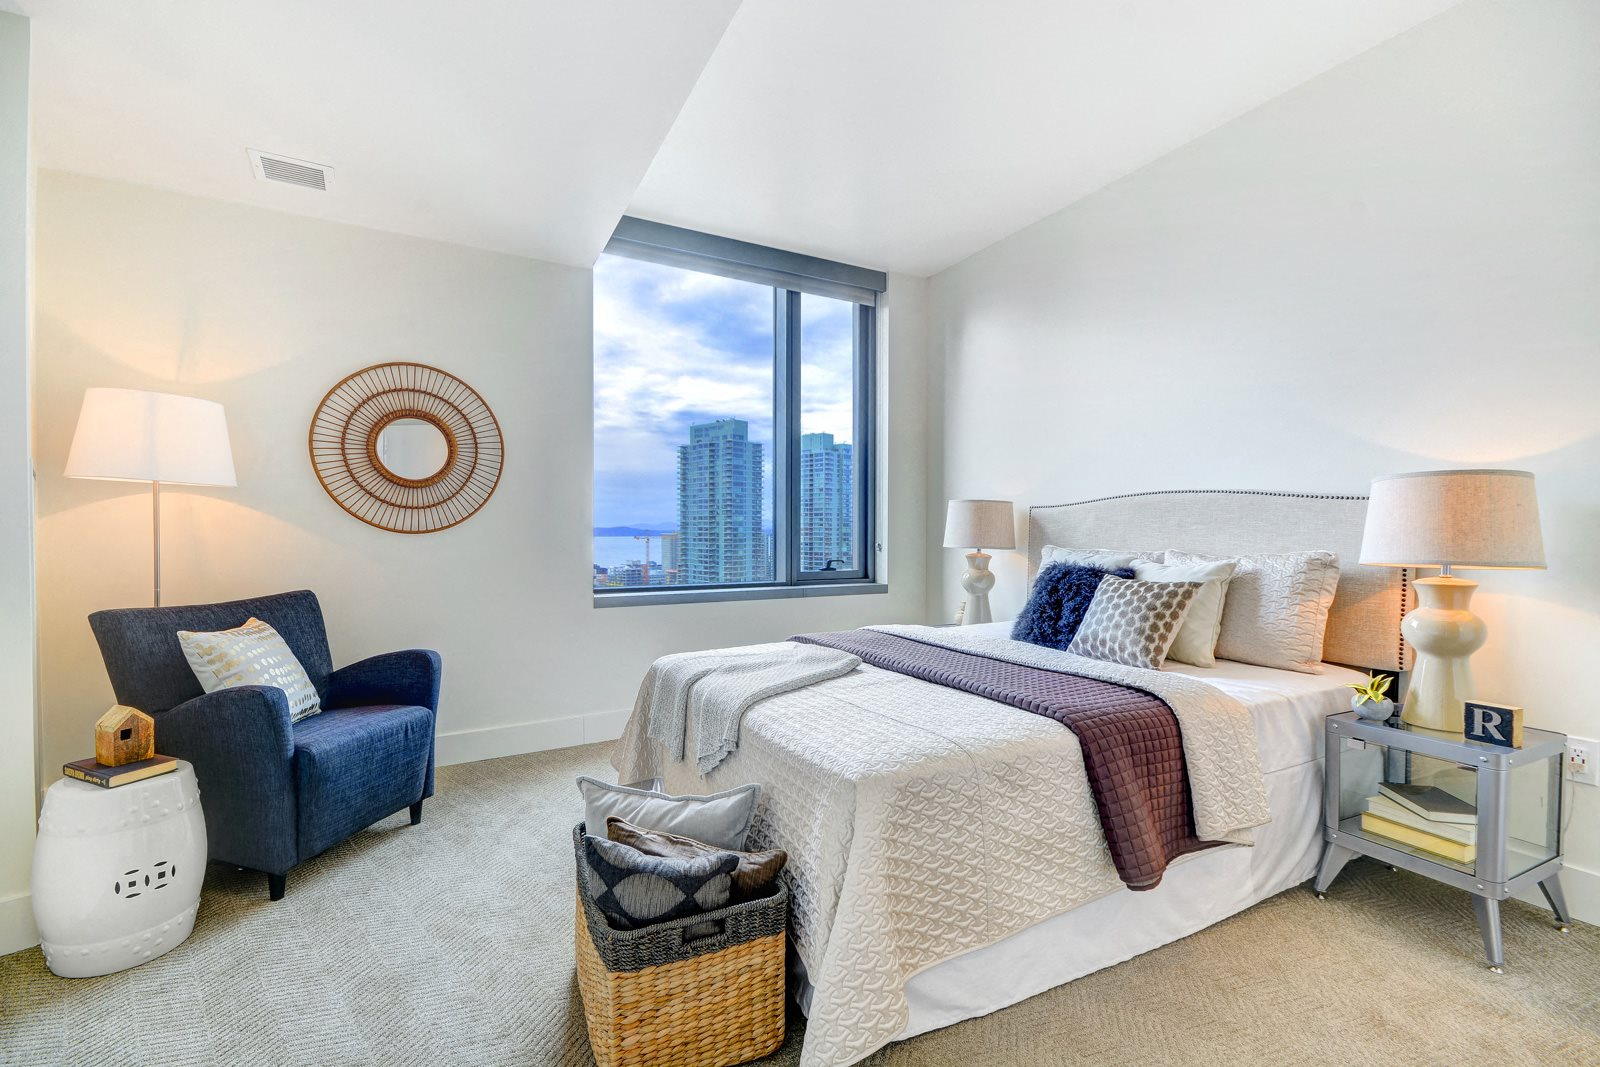 Cozy Bedrooms with a View at Stratus, 820 Lenora St., Seattle